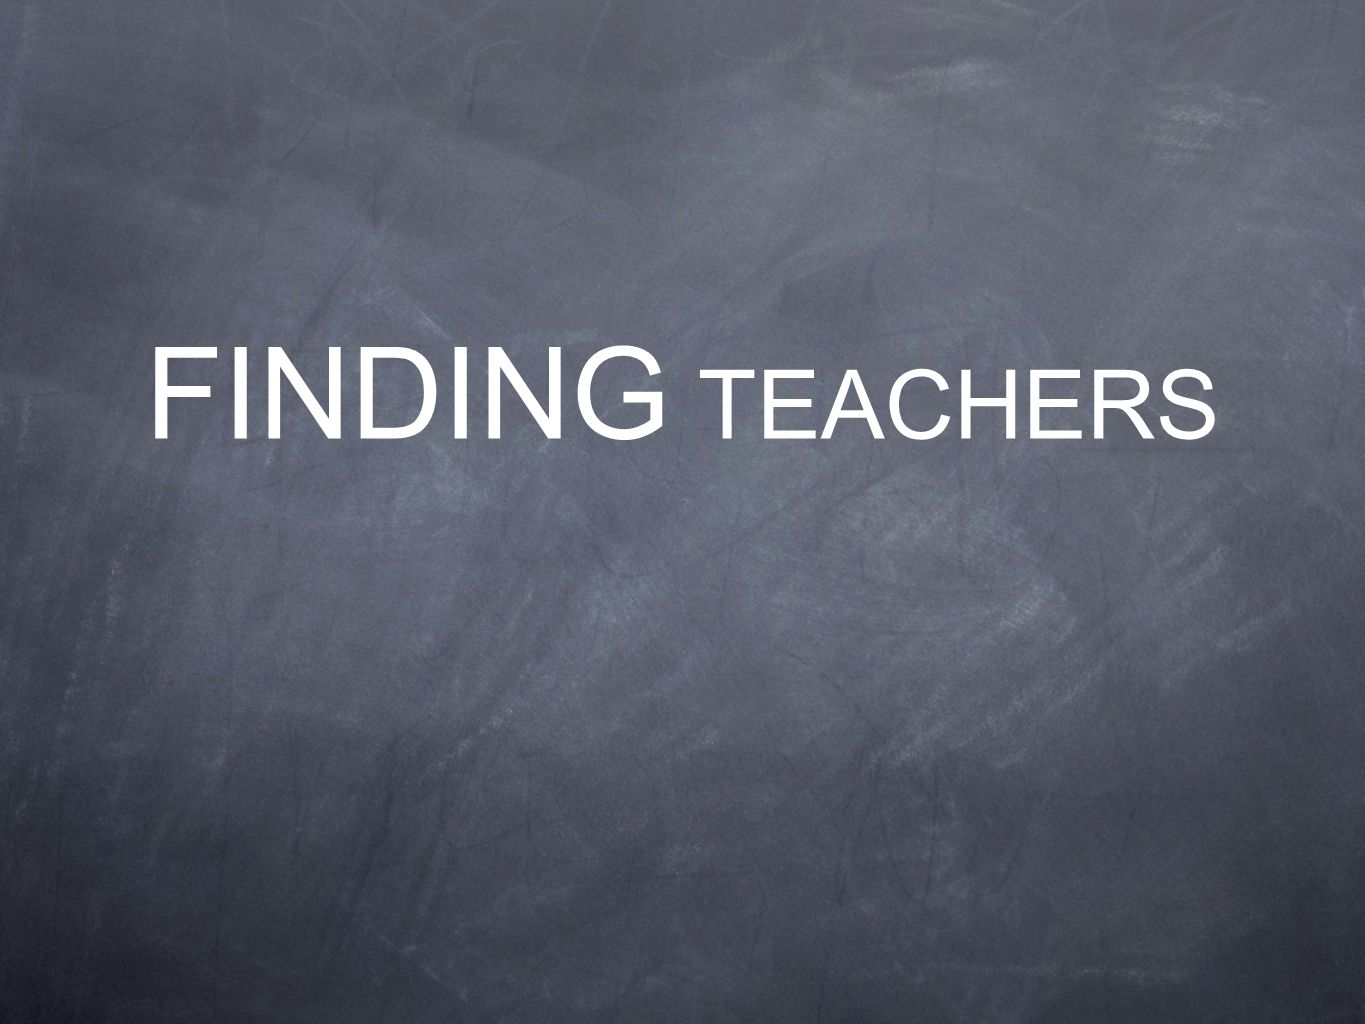 FINDING TEACHERS